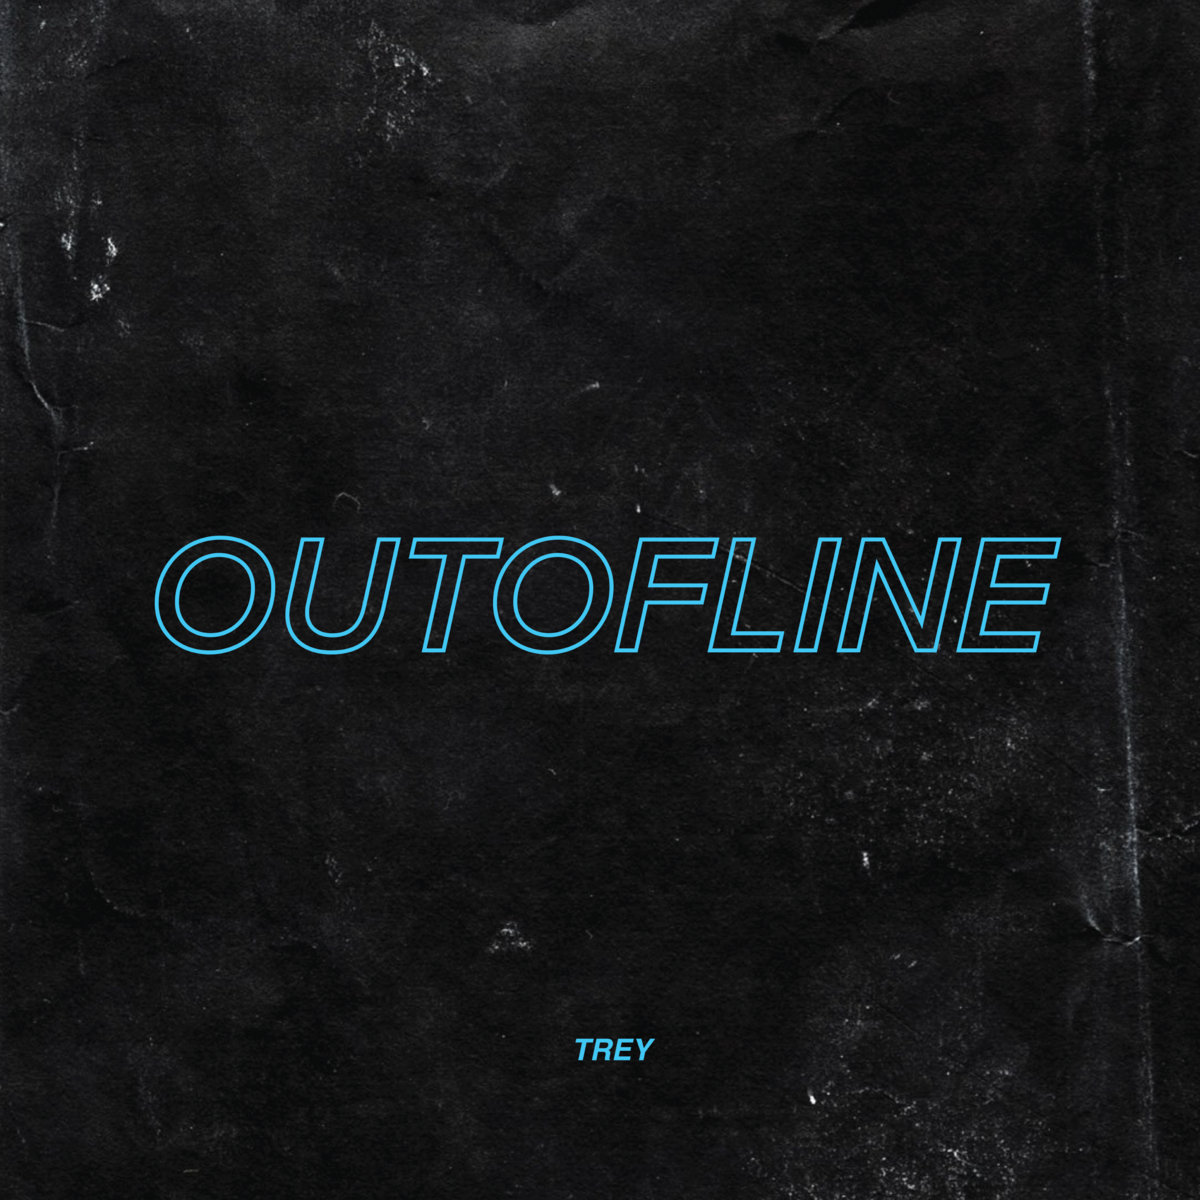 Outofline by TREY